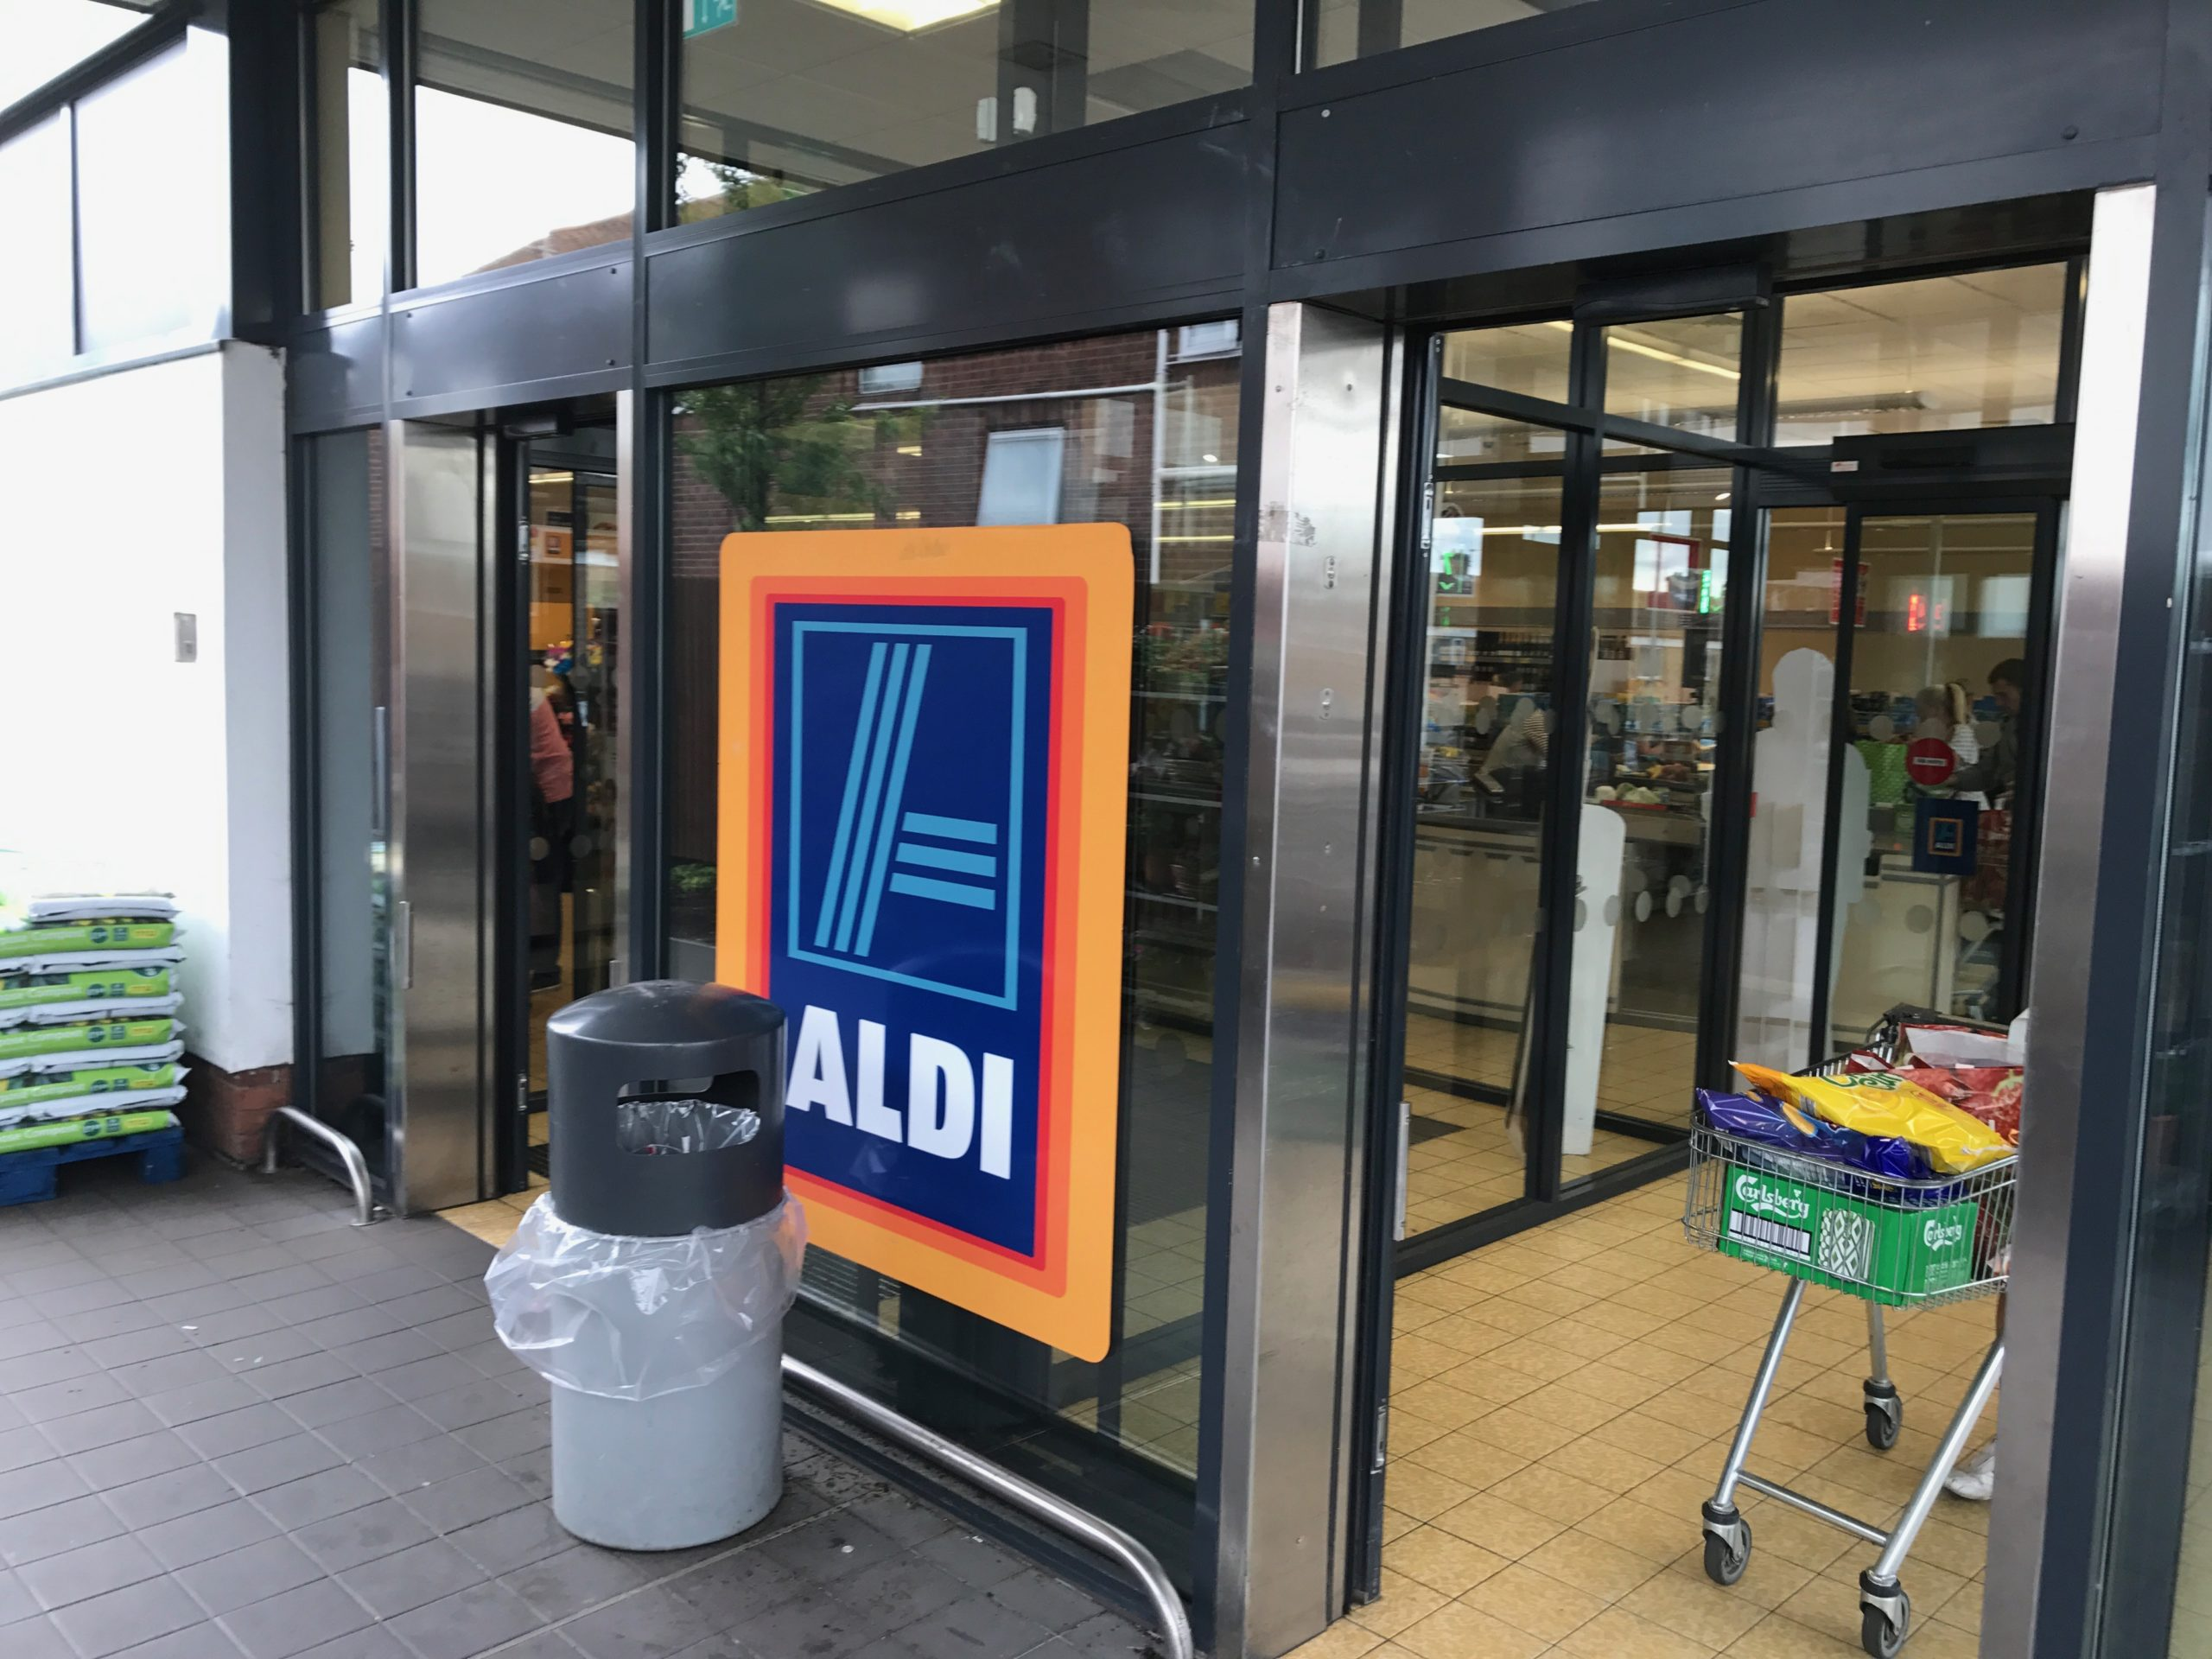 Shop front spraying Aldi